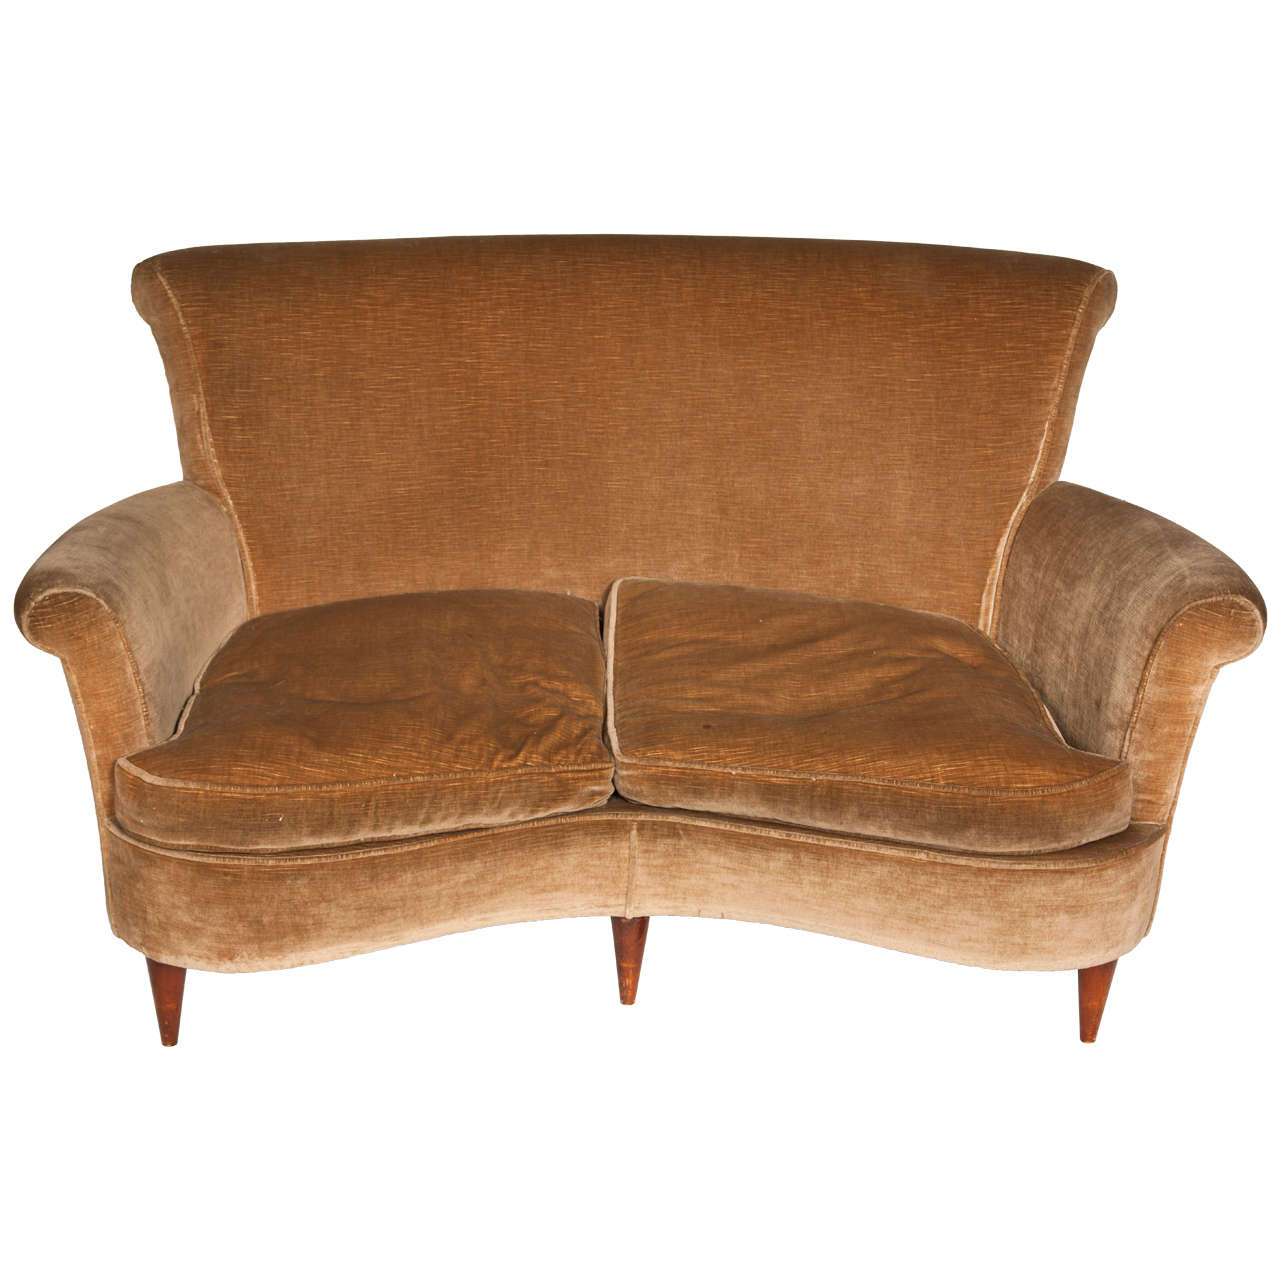 1940s curved italian design sofa at 1stdibs for 1940s furniture design